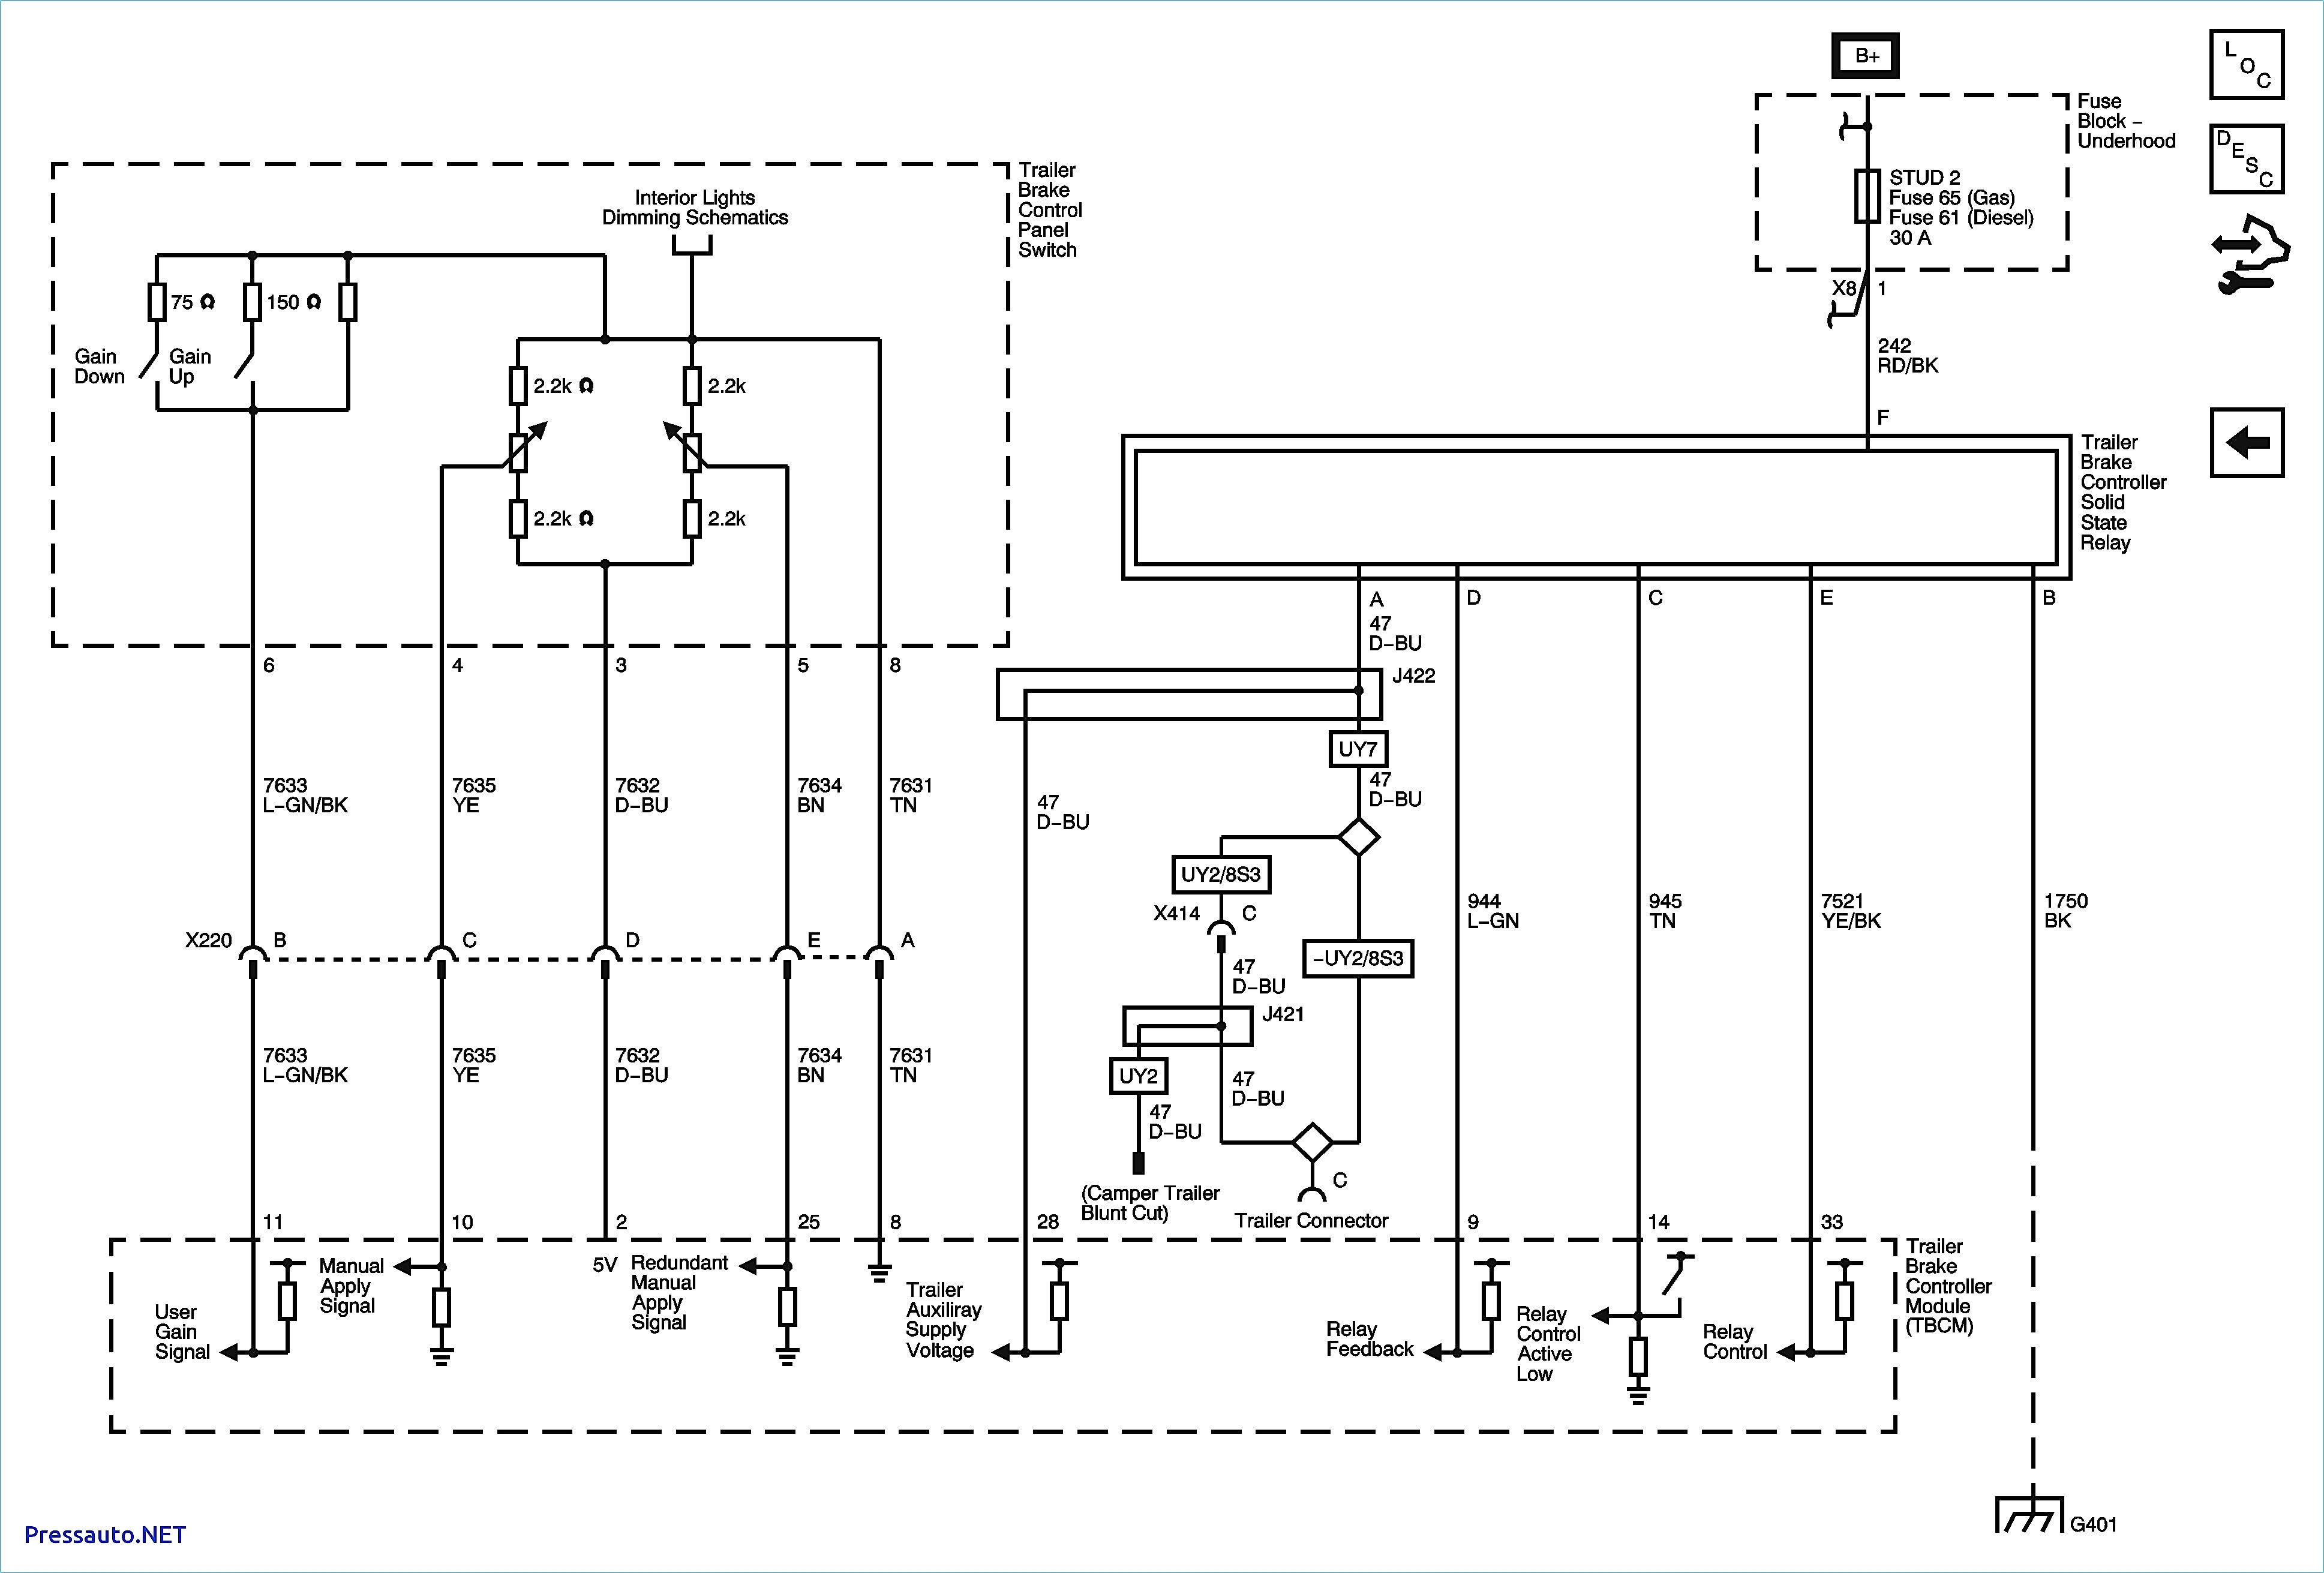 Force Controller Wiring Diagram | Wiring Library - Chevy Brake Controller Wiring Diagram